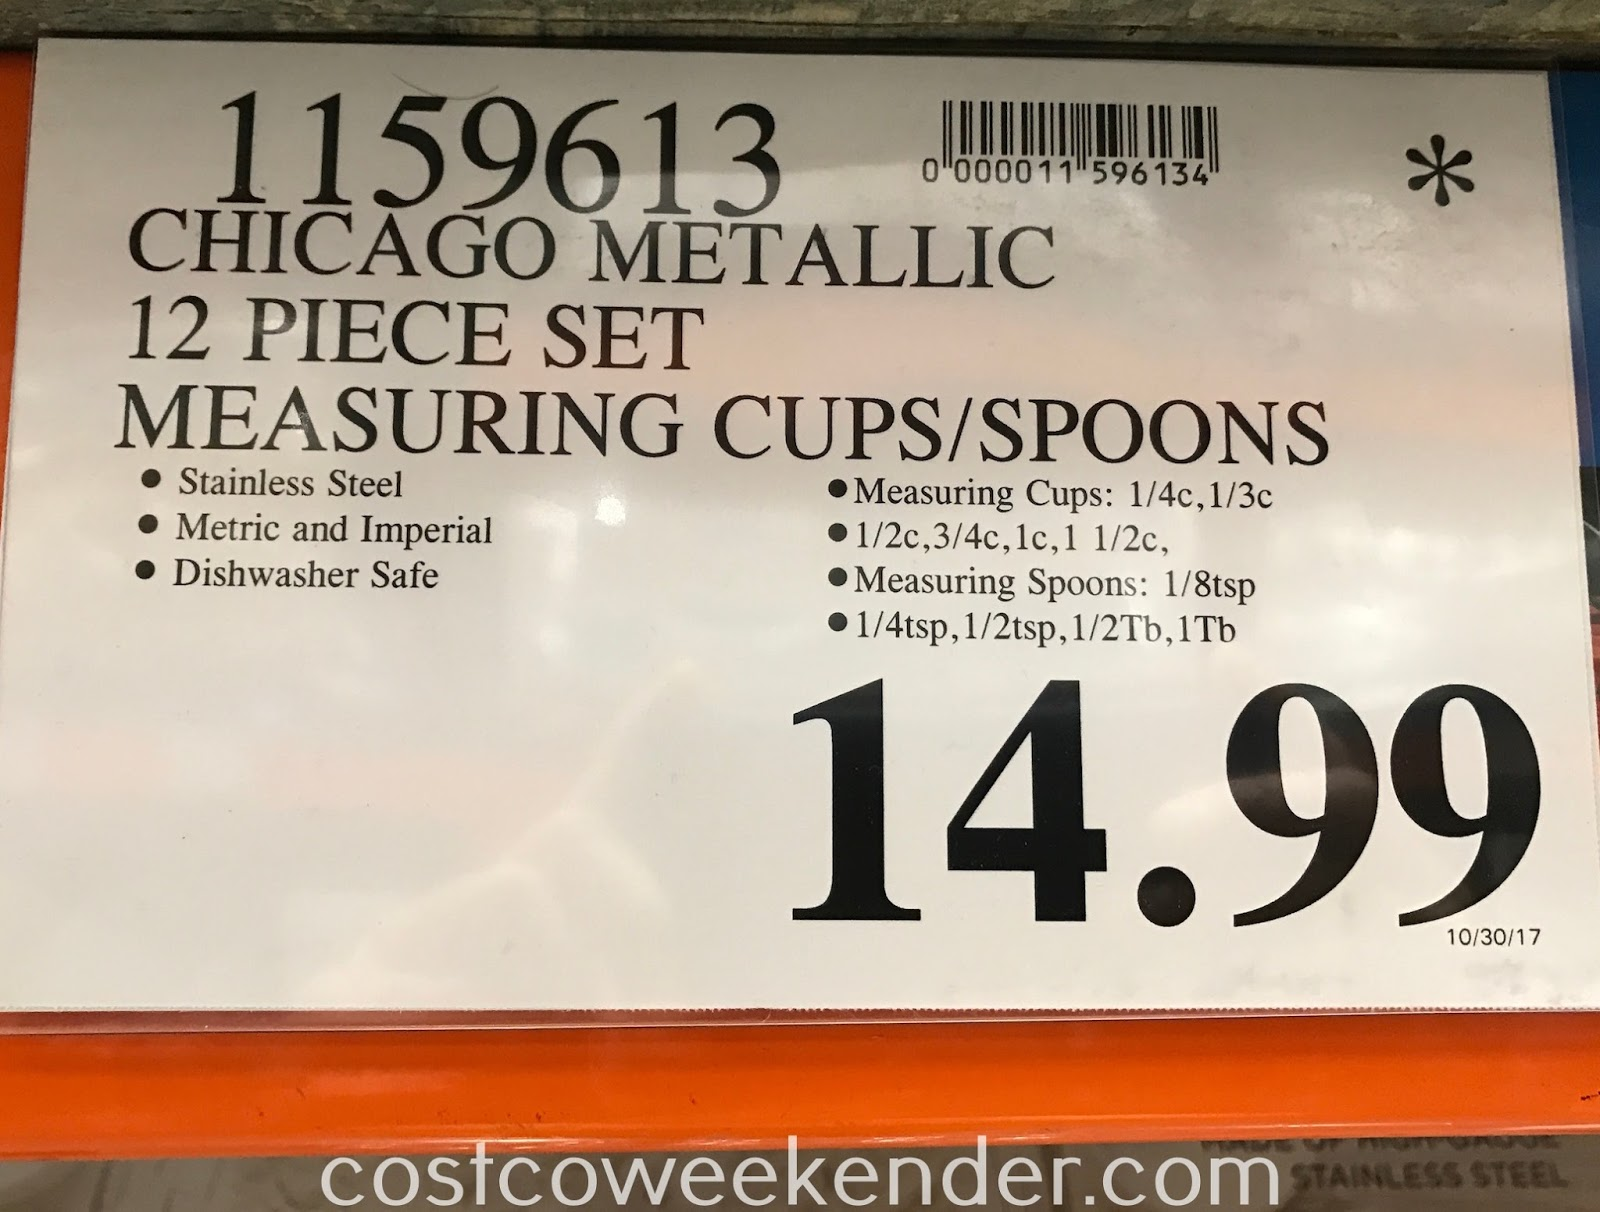 Deal for the Chicago Metallic Measuring Cups and Spoons 12-piece set at Costco